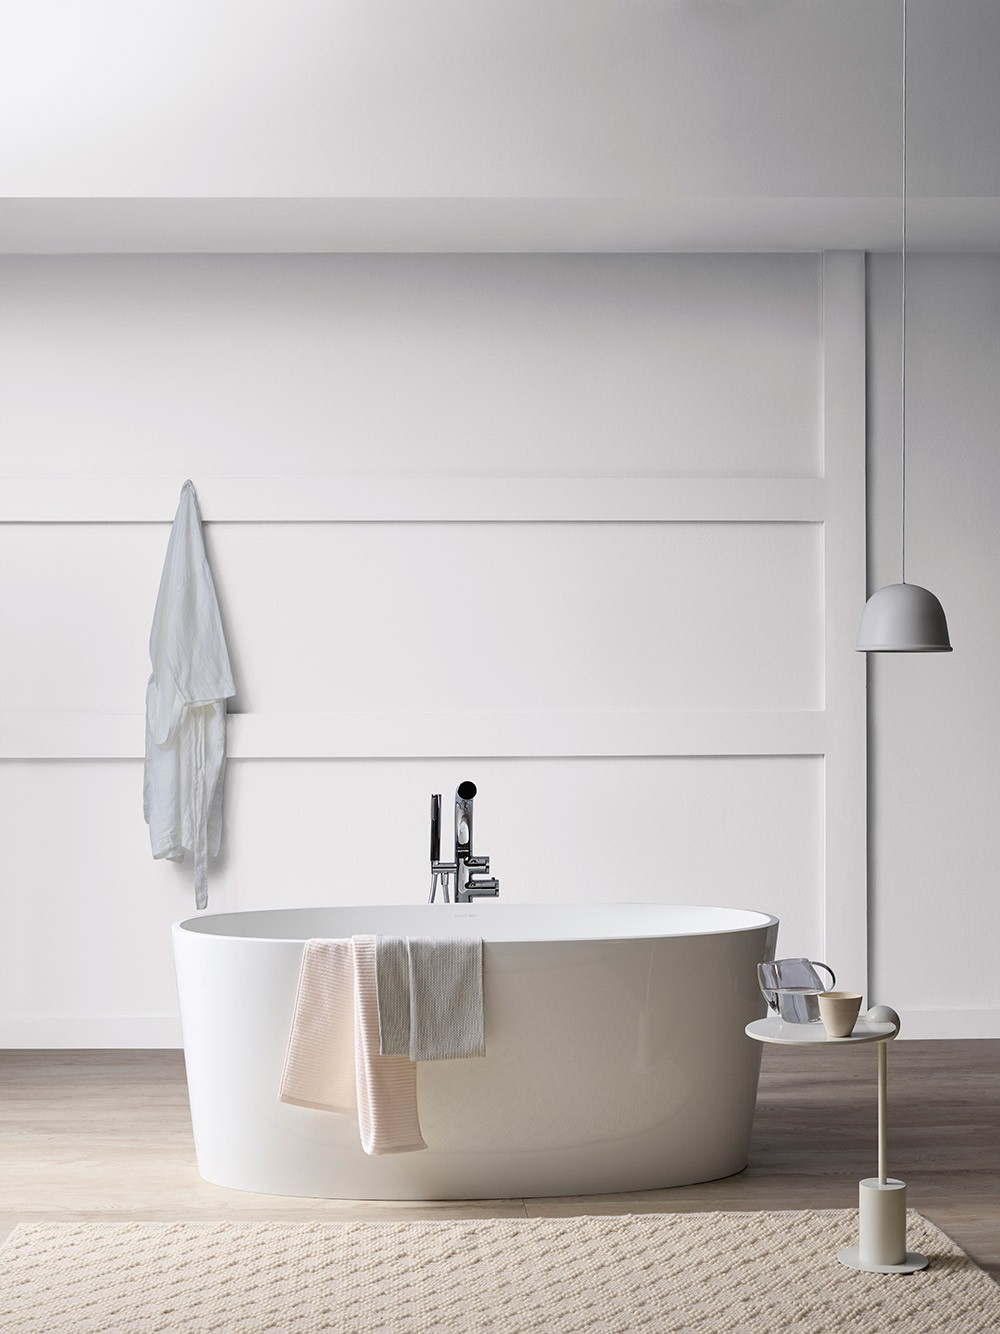 White bathtub in room